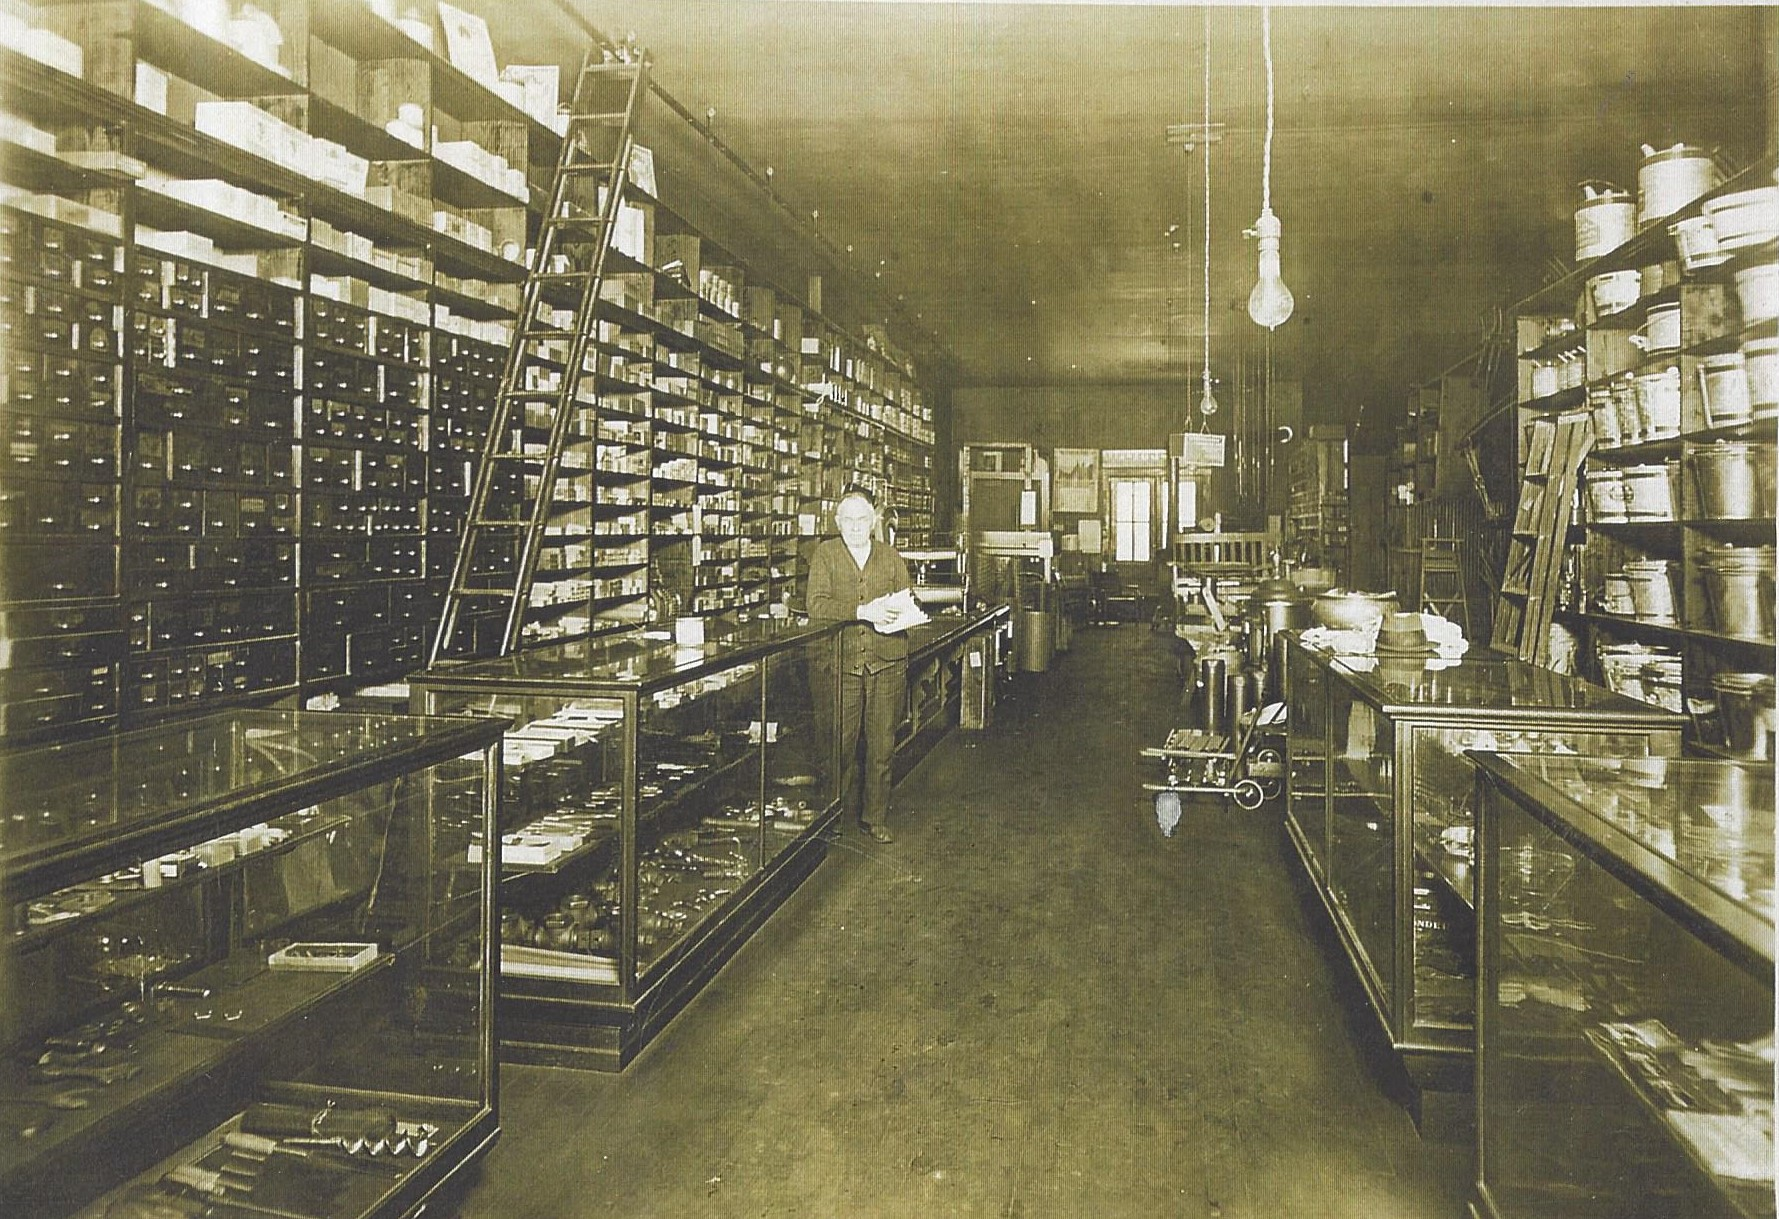 1930 - Inside the hardware store in Fort Recovery, Ohio